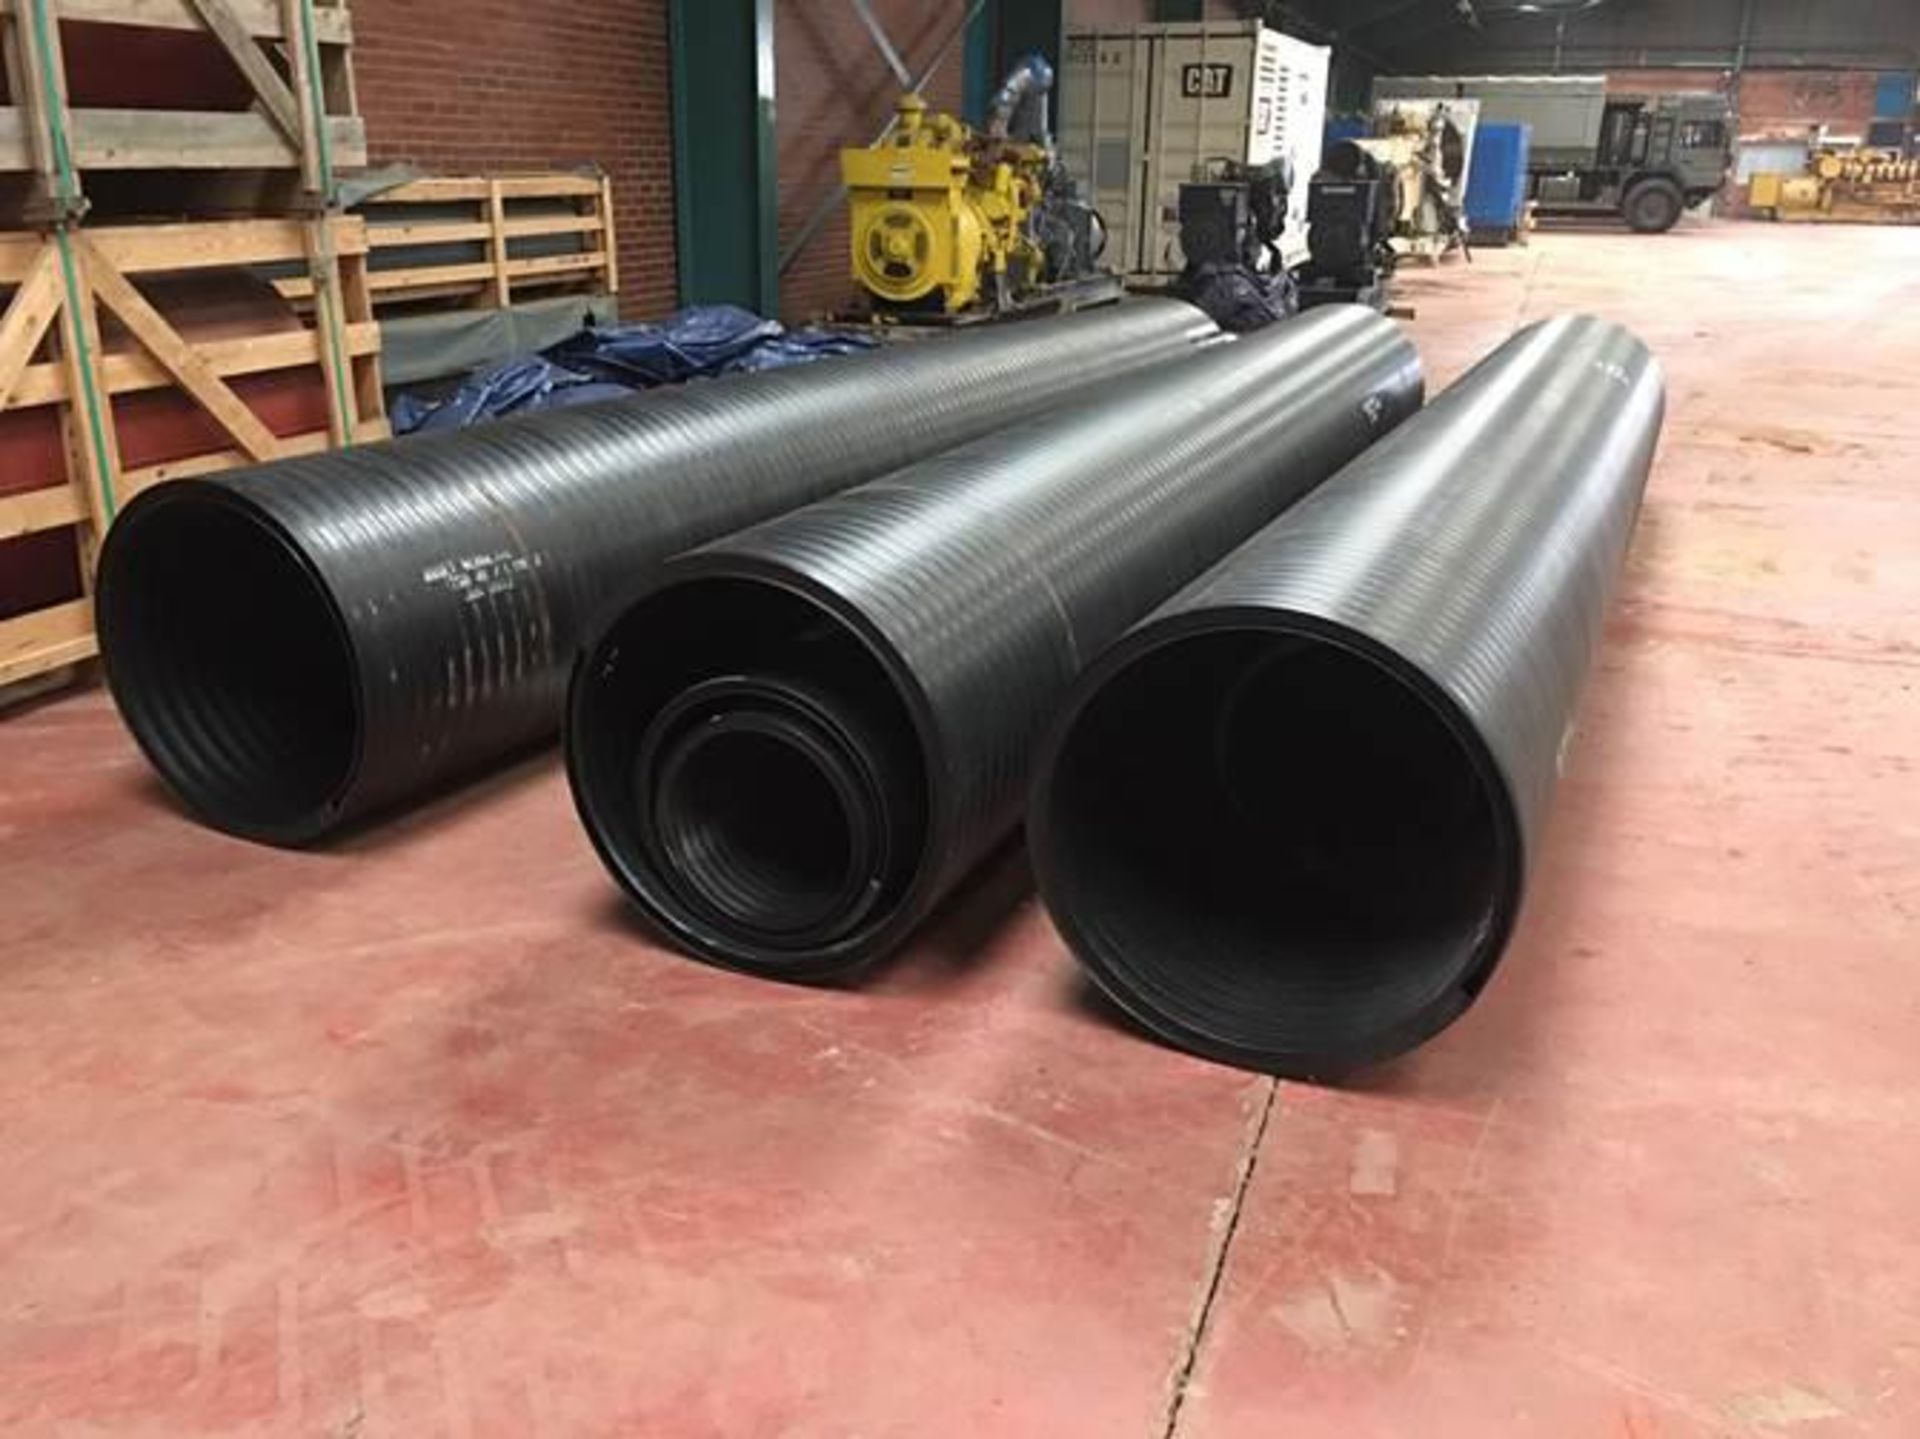 1440 Metres of New (Unused) HDPE Culvert Pipes in 14 x 20FT ISO Containers - Image 4 of 7